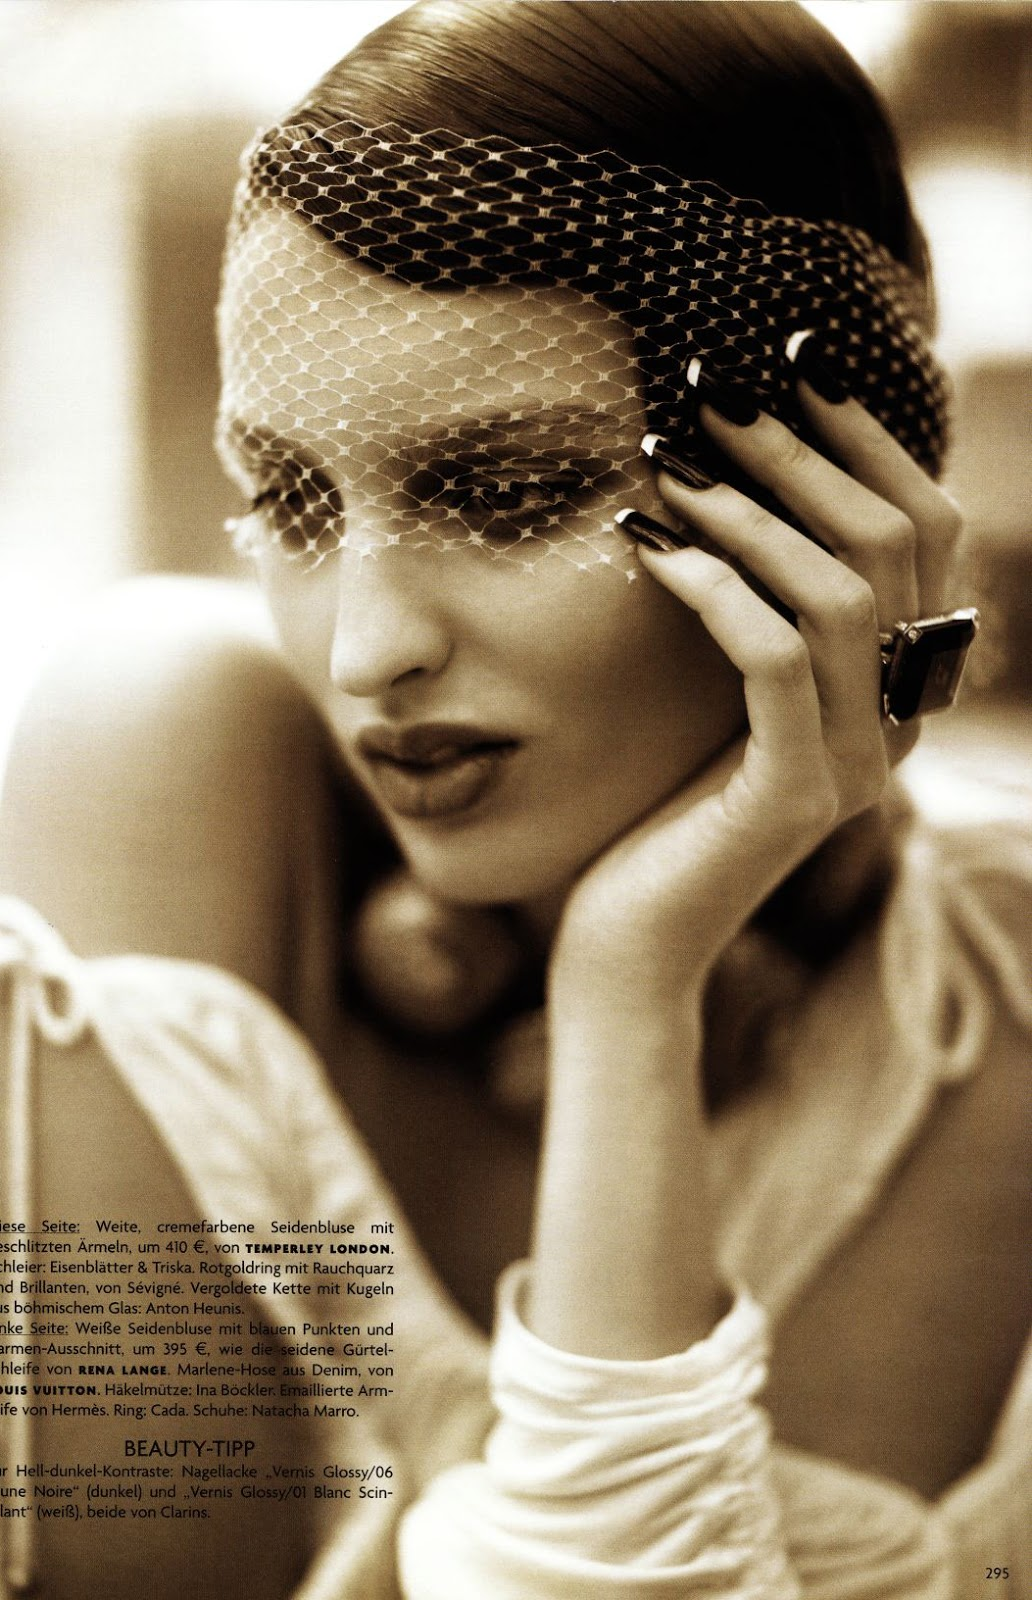 Georgina Stojiljkovic in Miami revue / Vogue Germany March 2006 (photography: Alexi Lubomirski, styling: Christiane Arp) via fashioned by love british fashion blog